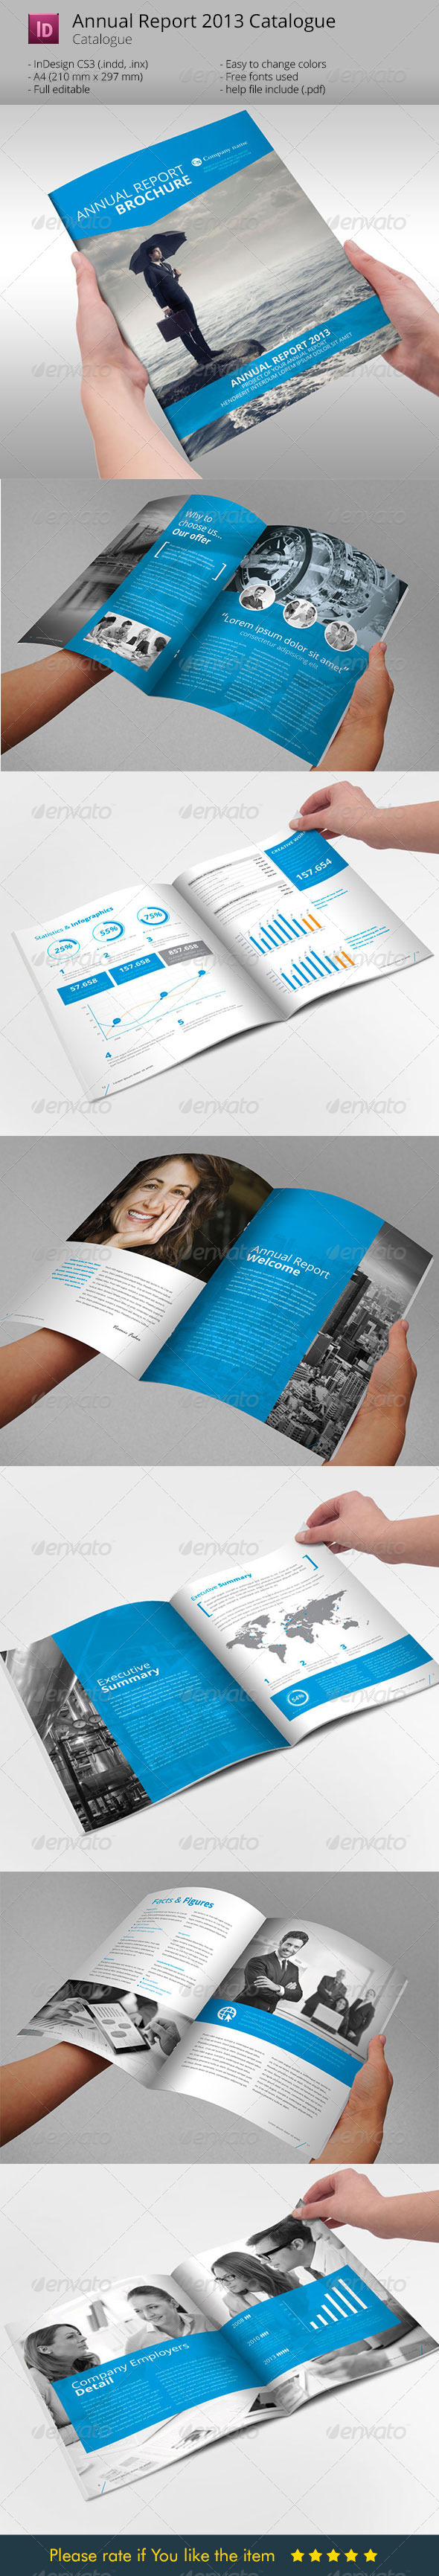 indesign brochure template - annual report brochure indesign template by braxas